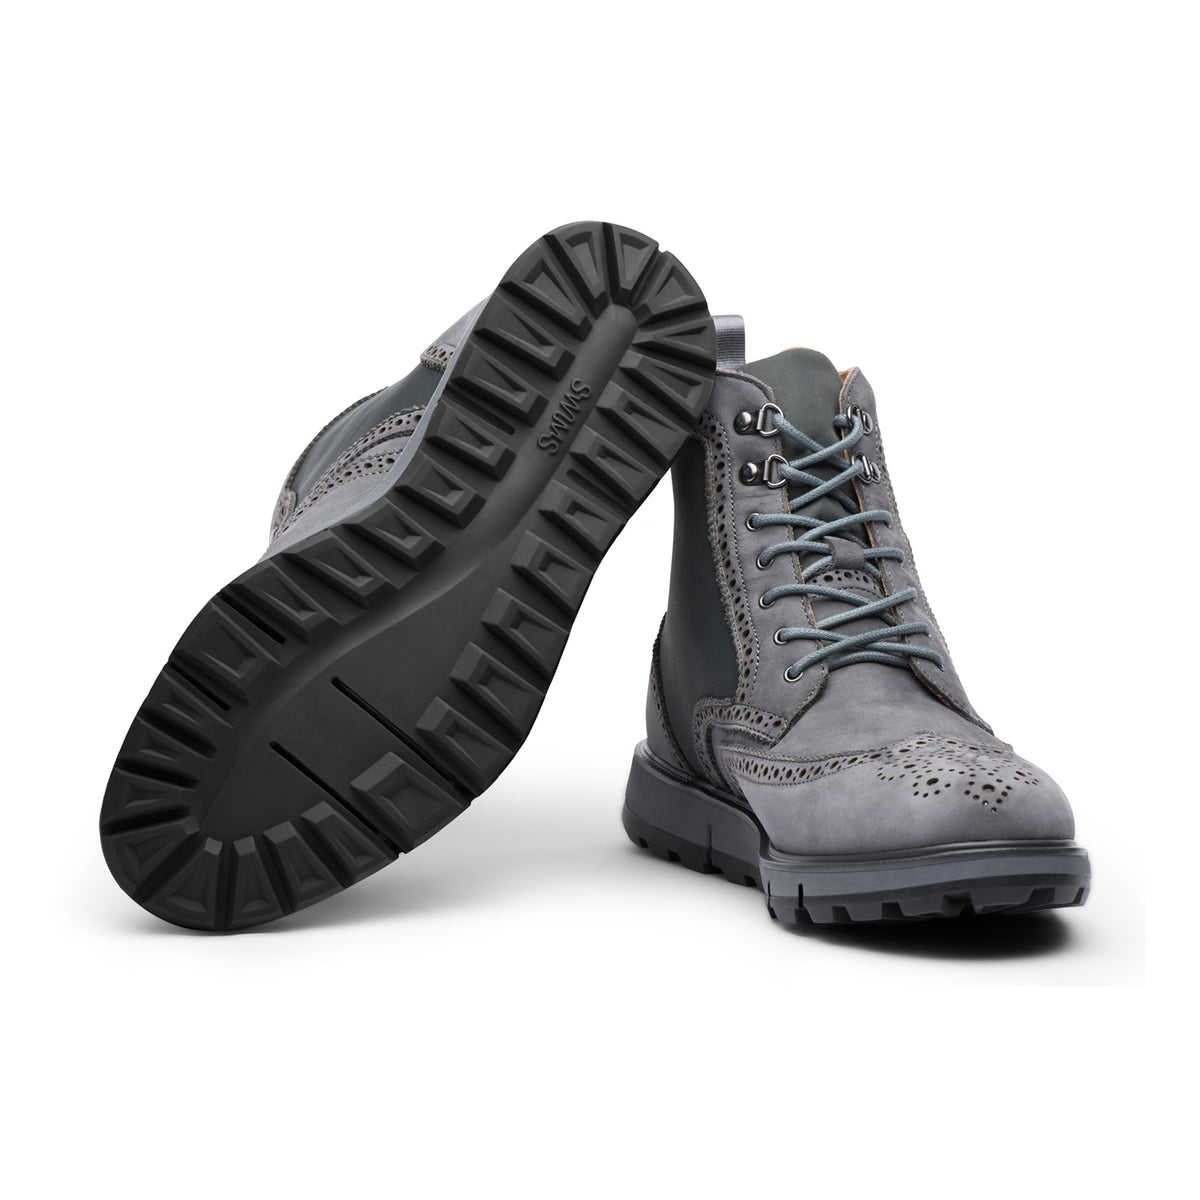 Motion Wing Tip Boot - background::white,variant::Gray/Black